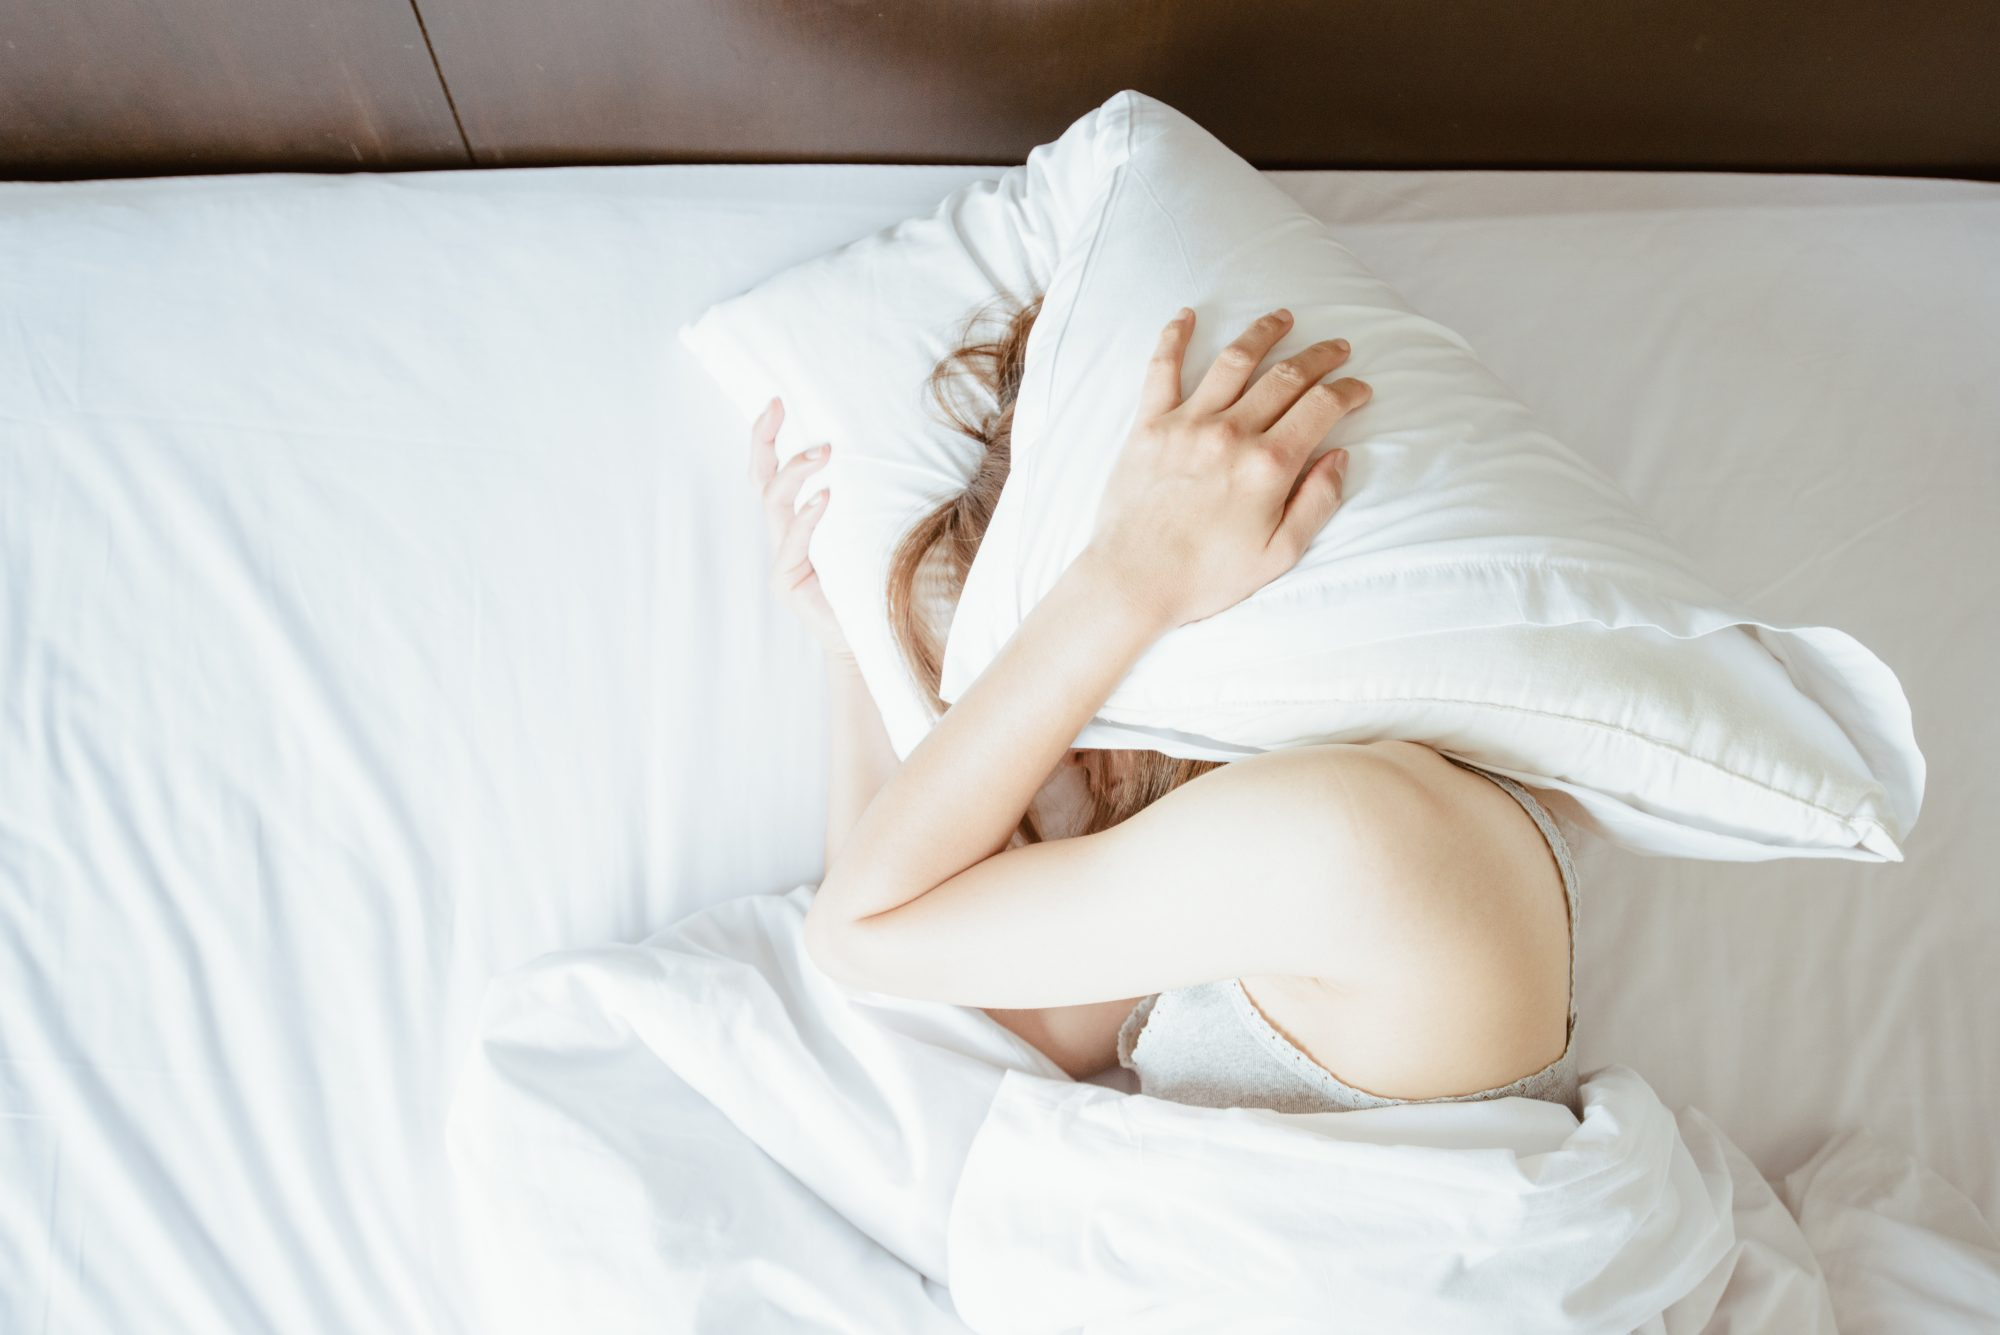 Hormonal Changes Are Wreaking Havoc on Your Sleep